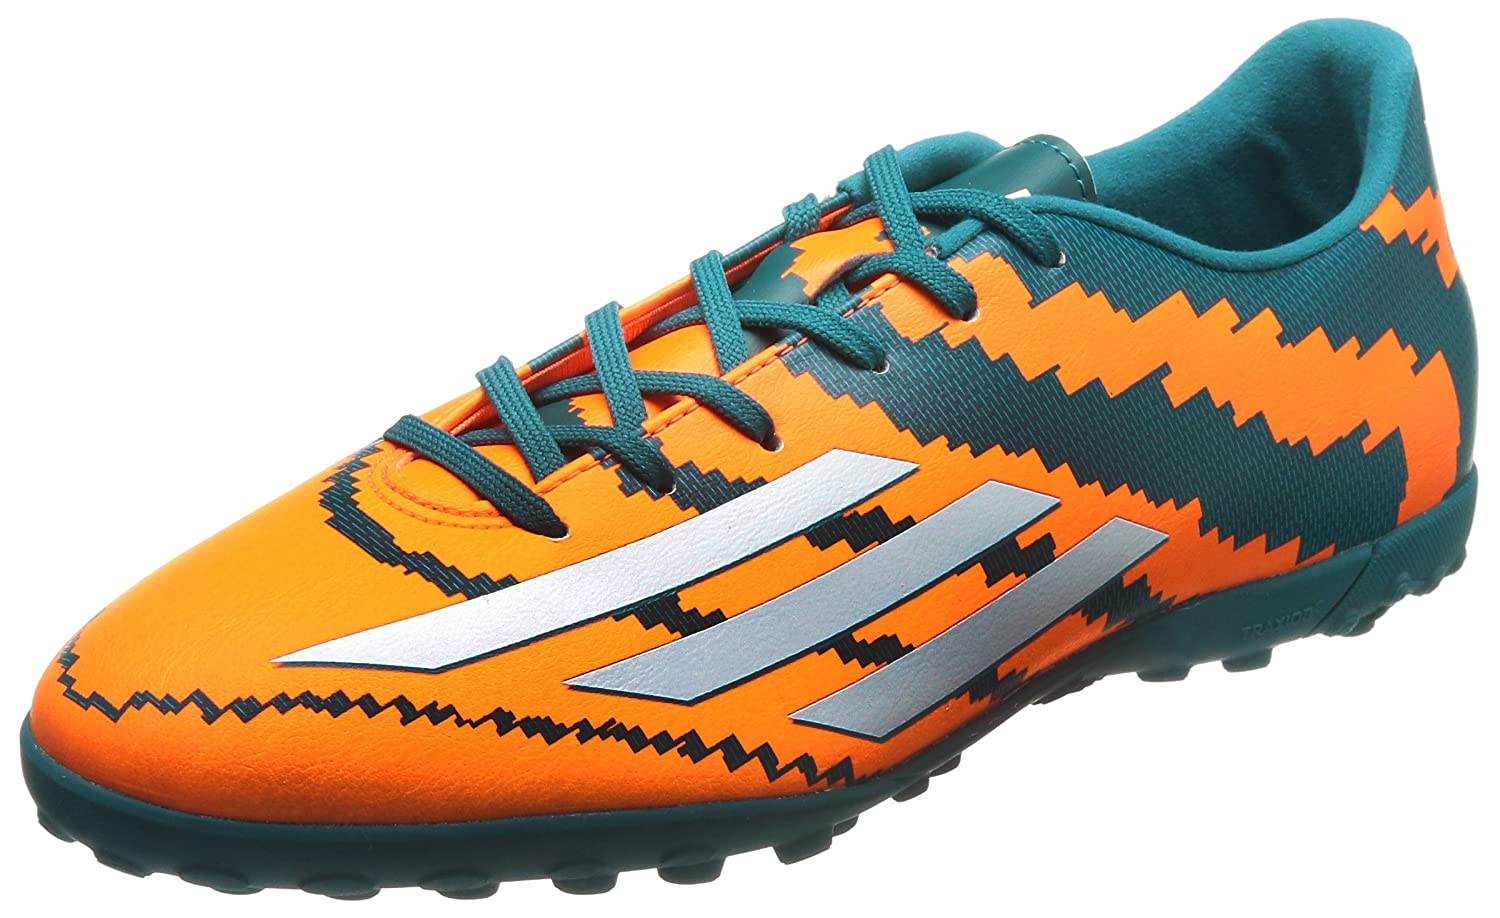 new product 5f7ae 283ec Adidas Messi 10.3 Tf Scarpe Da Calcio da uomo arancione power teal f14ftwr  - tualu.org